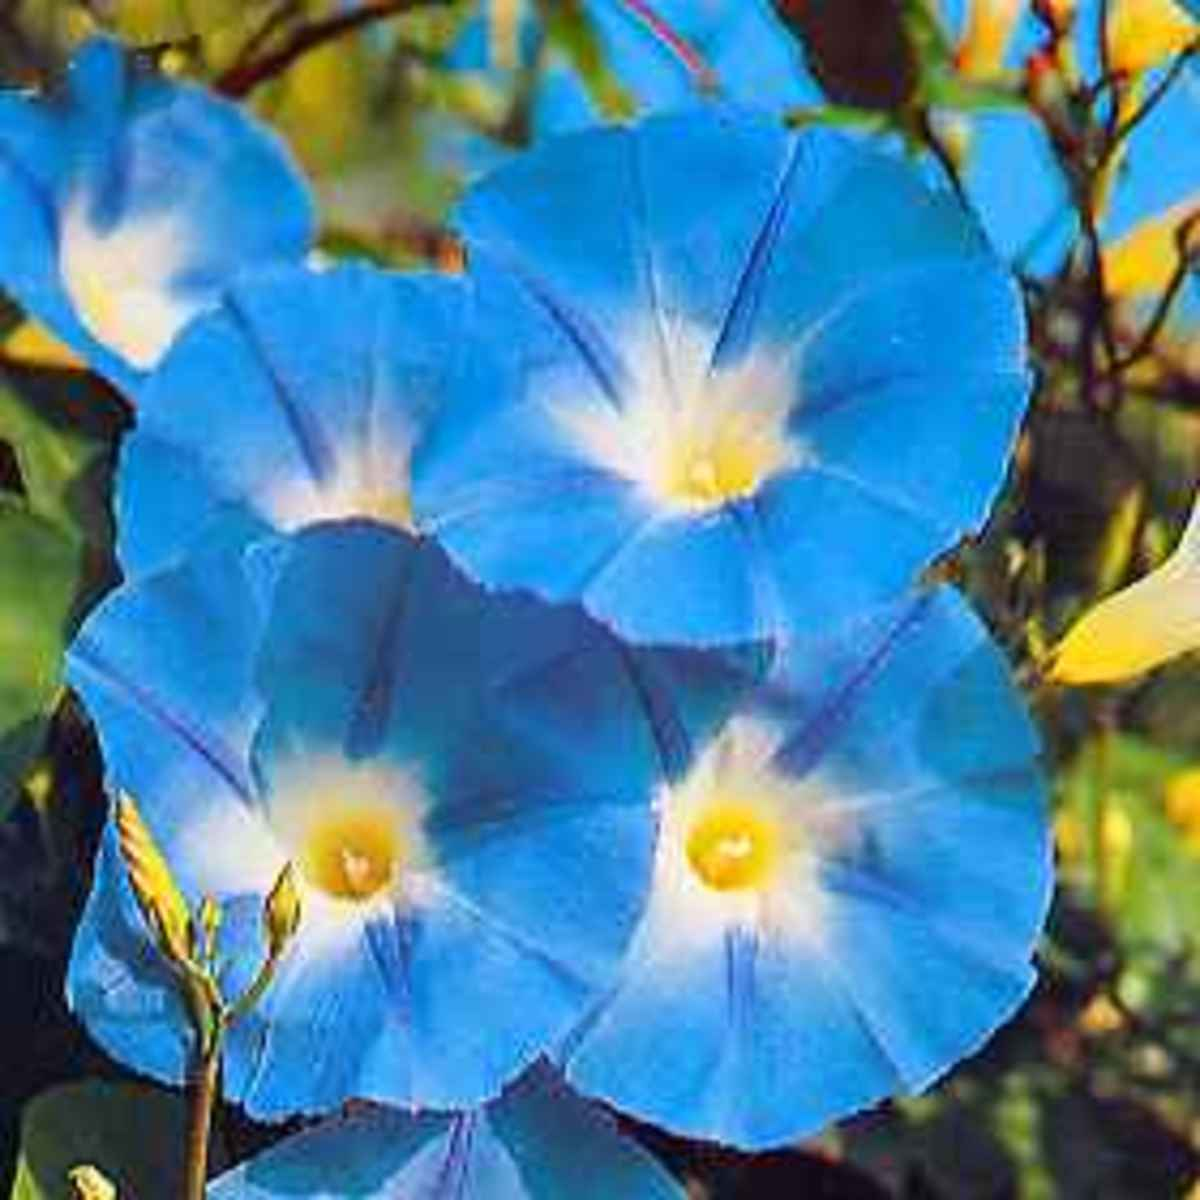 Morning glory seeds have been used to divine spiritual hallucinations for centuries.